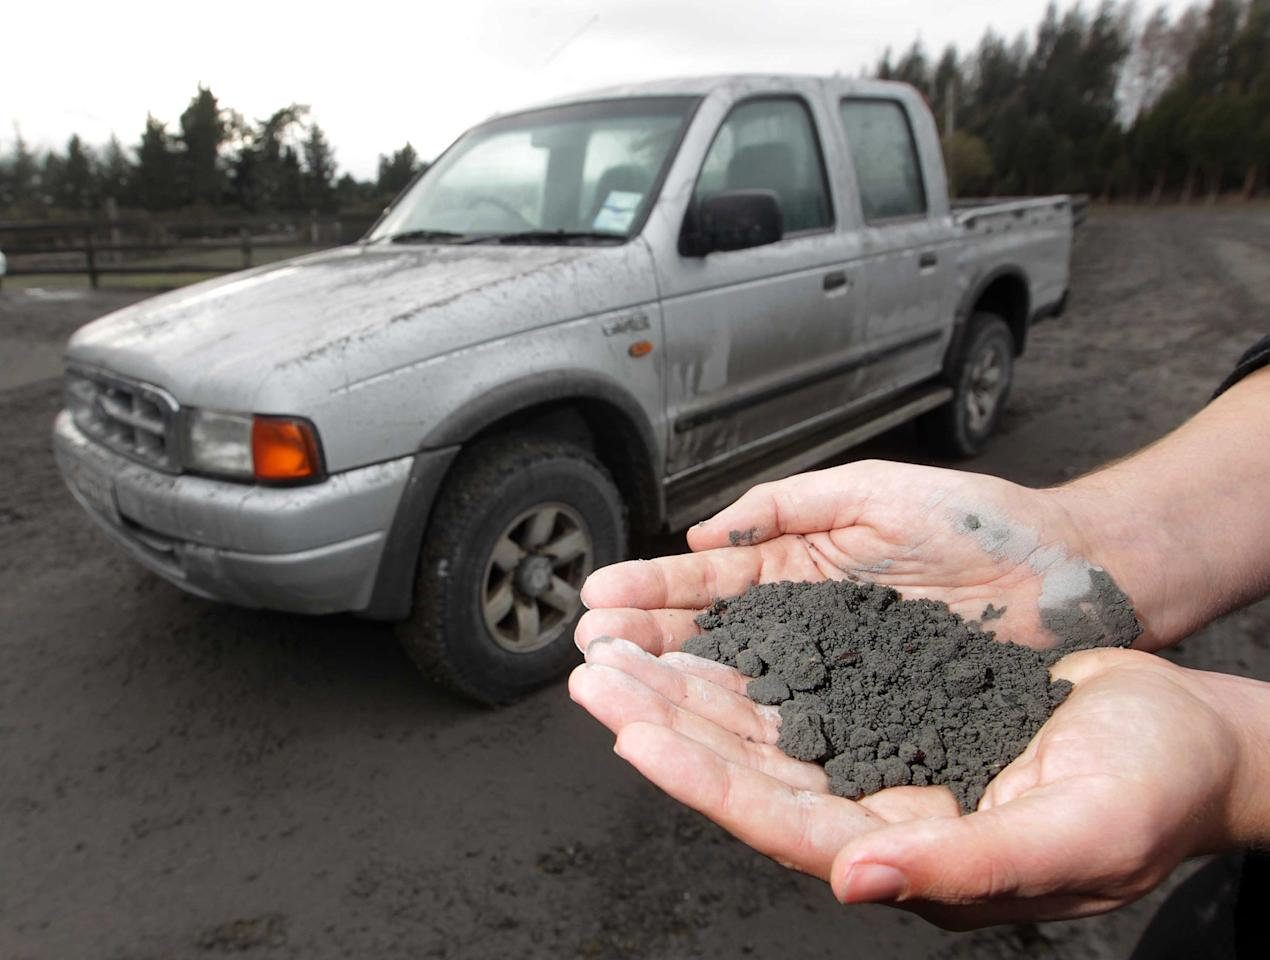 A man holds a handful of volcanic ashes that fell on a property in Rangipo near the base of Mt Tongariro, New Zealand after an eruption Tuesday, Aug. 7, 2012. The volcano in New Zealand's central North Island has erupted for the first time in more than a century, sending out an ash cloud that is causing road closures and the cancellation of some domestic flights. (AP Photo/New Zealand Herald, Alan Gibson) AUSTRALIA OUT, NEW ZEALAND OUT